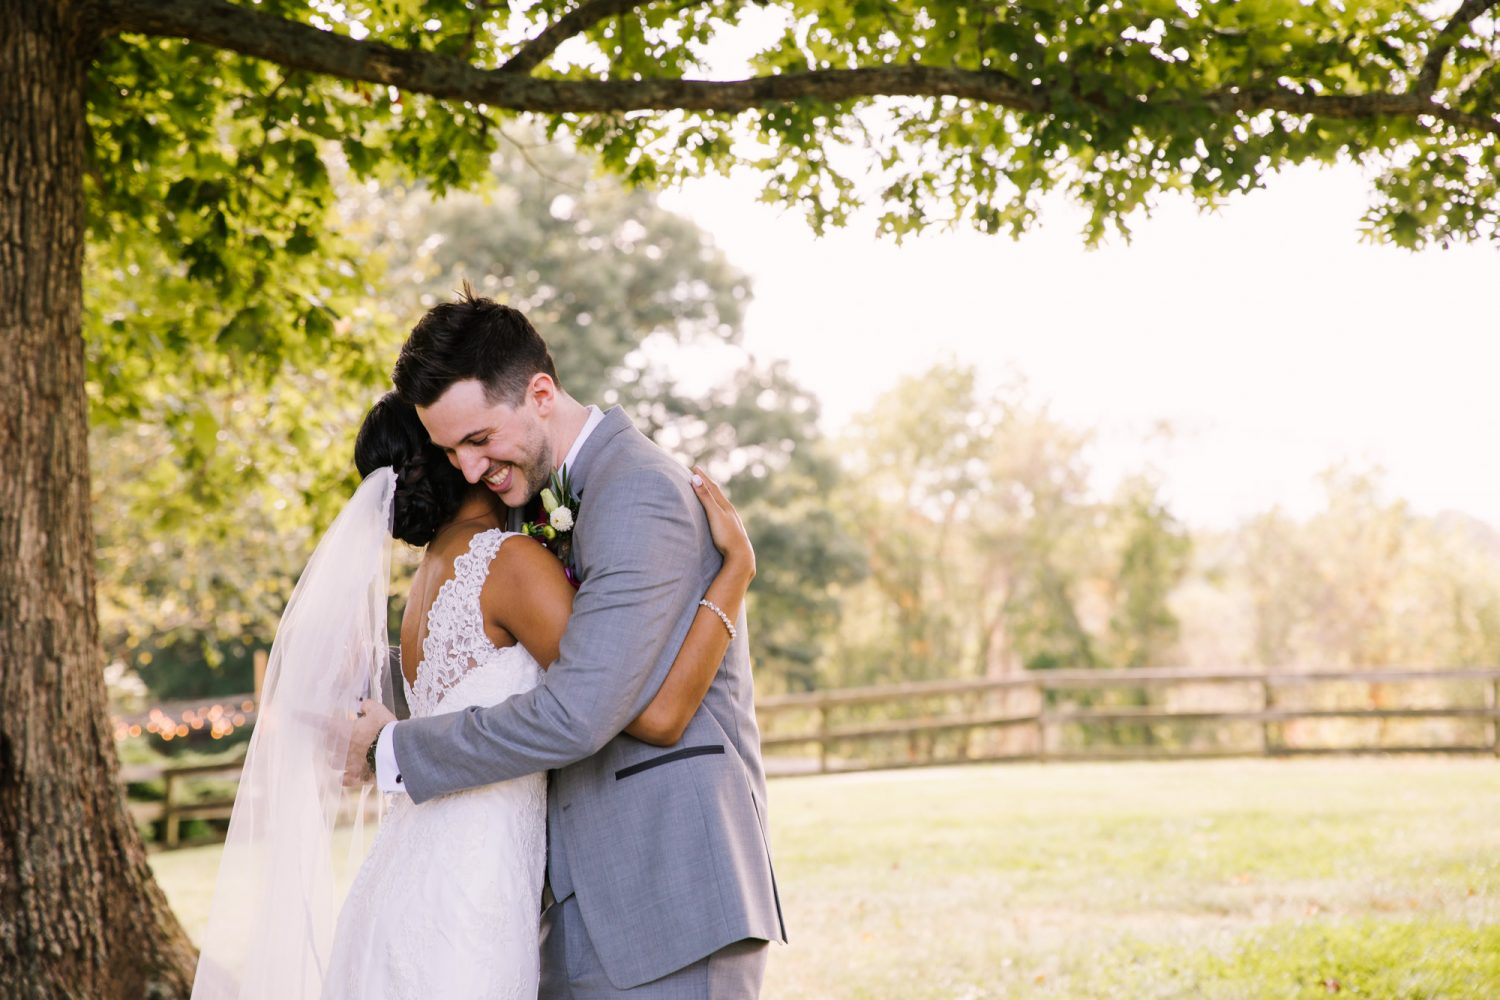 Waynesville NC Wedding Photography | First Look Embrace